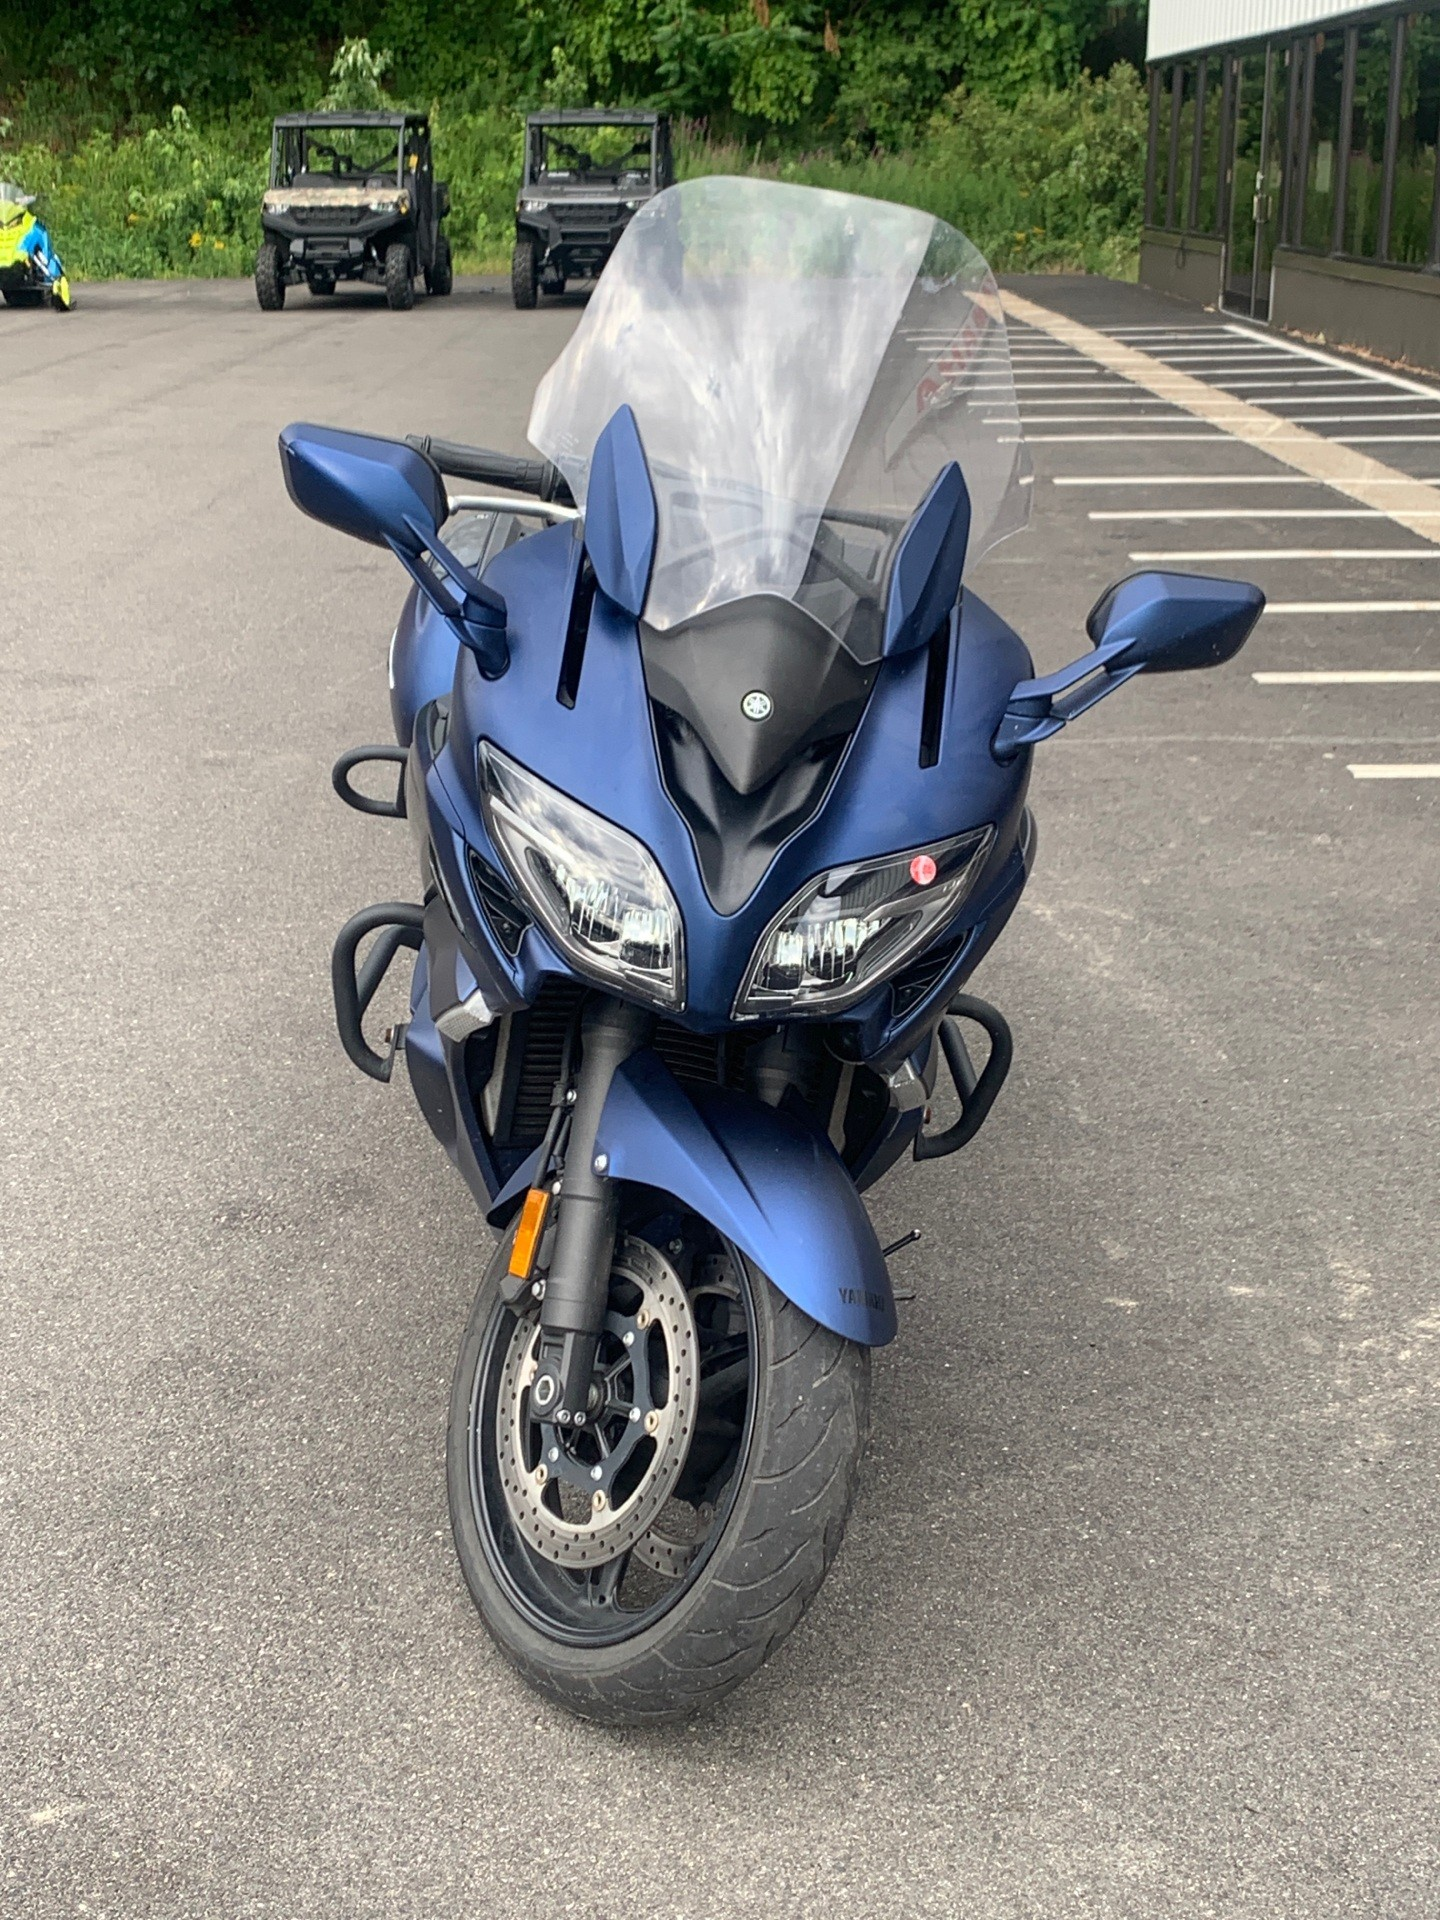 2018 Yamaha FJR1300A in Lewiston, Maine - Photo 2